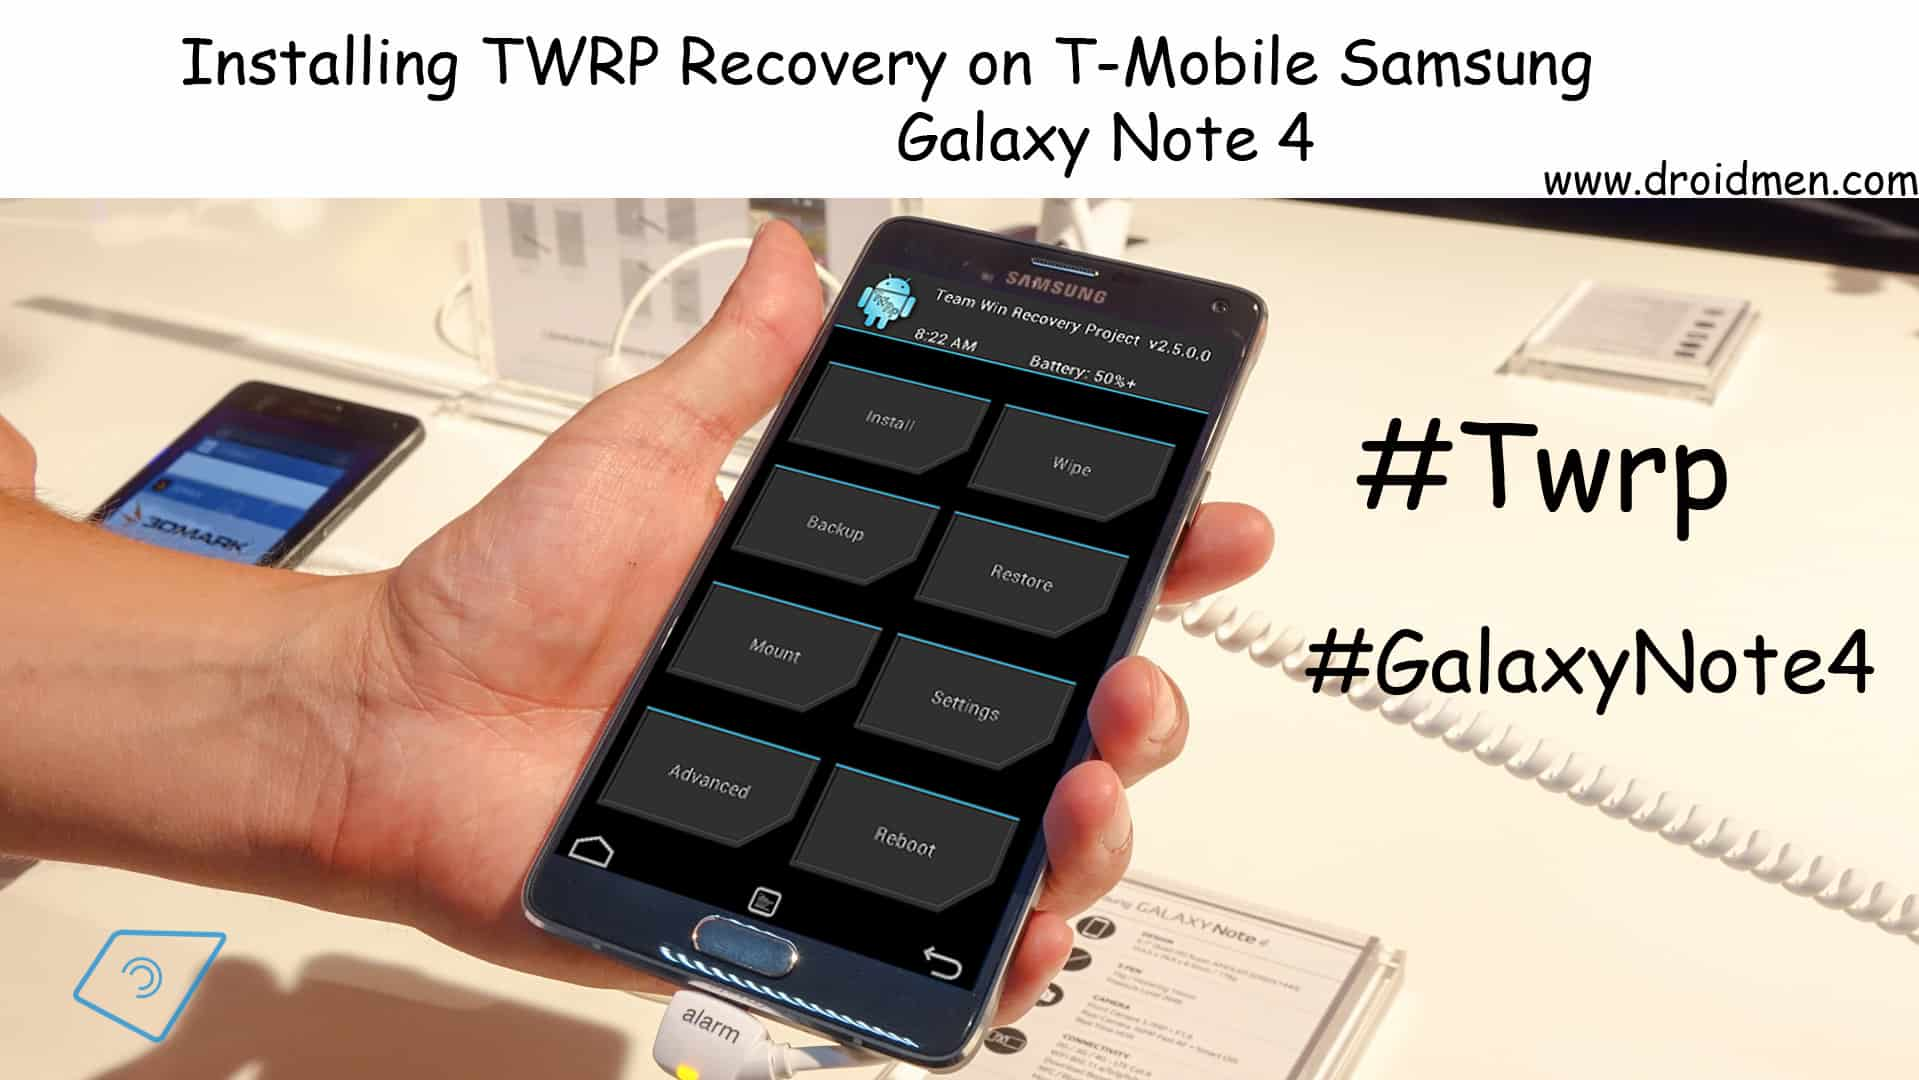 Install TWRP Recovery on T-Mobile Galaxy Note 4